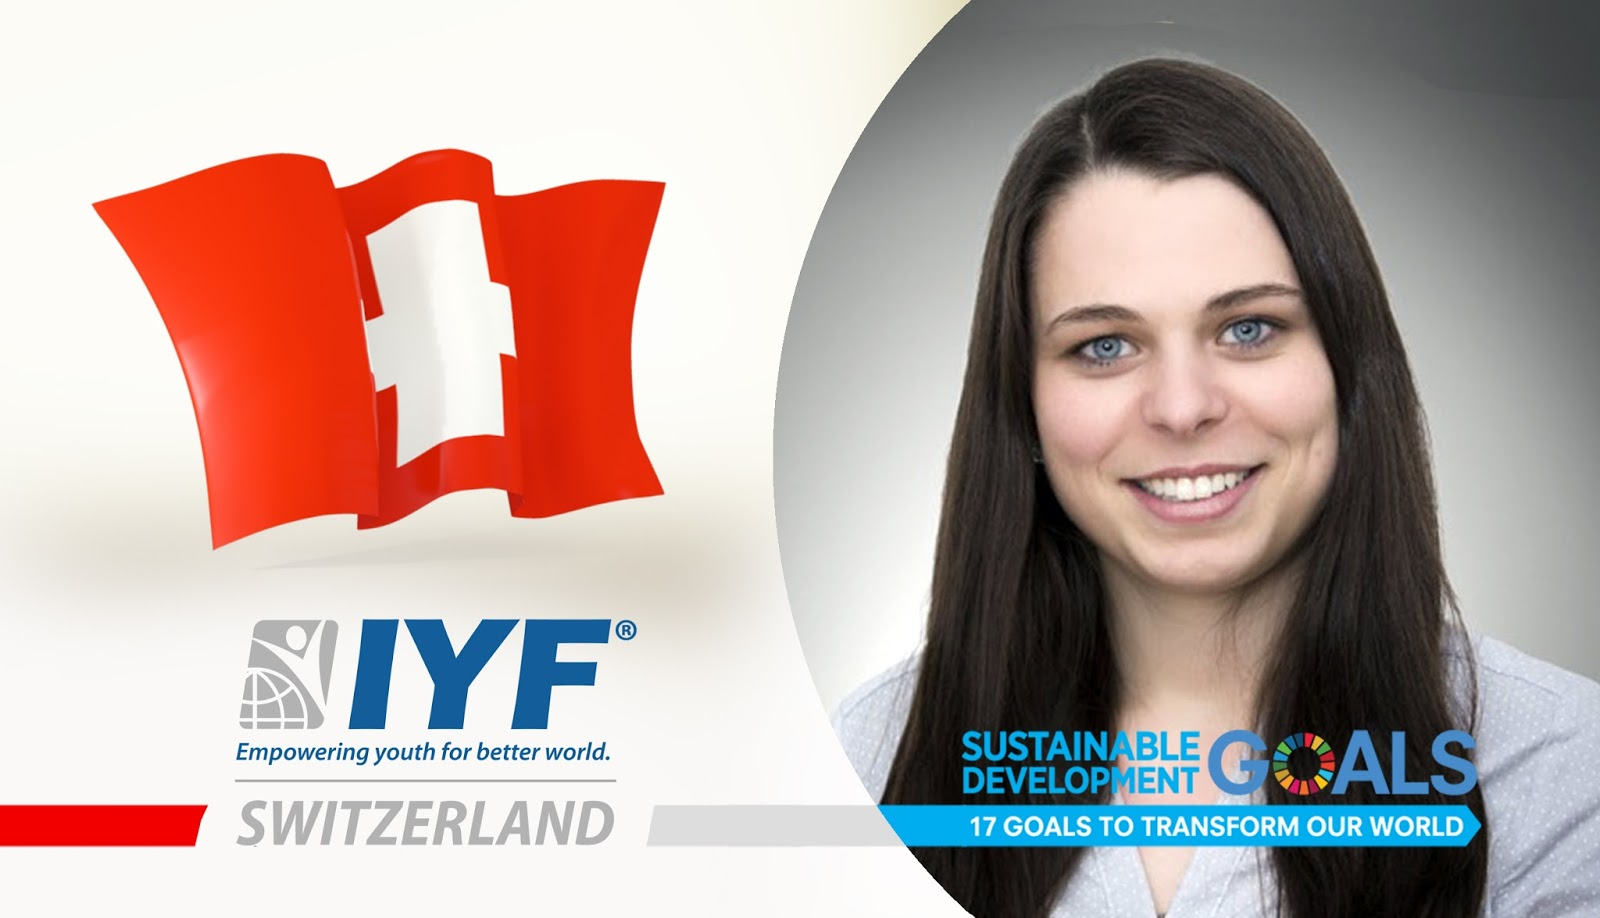 Lisa Gisler,IYF Representative in Switzerland